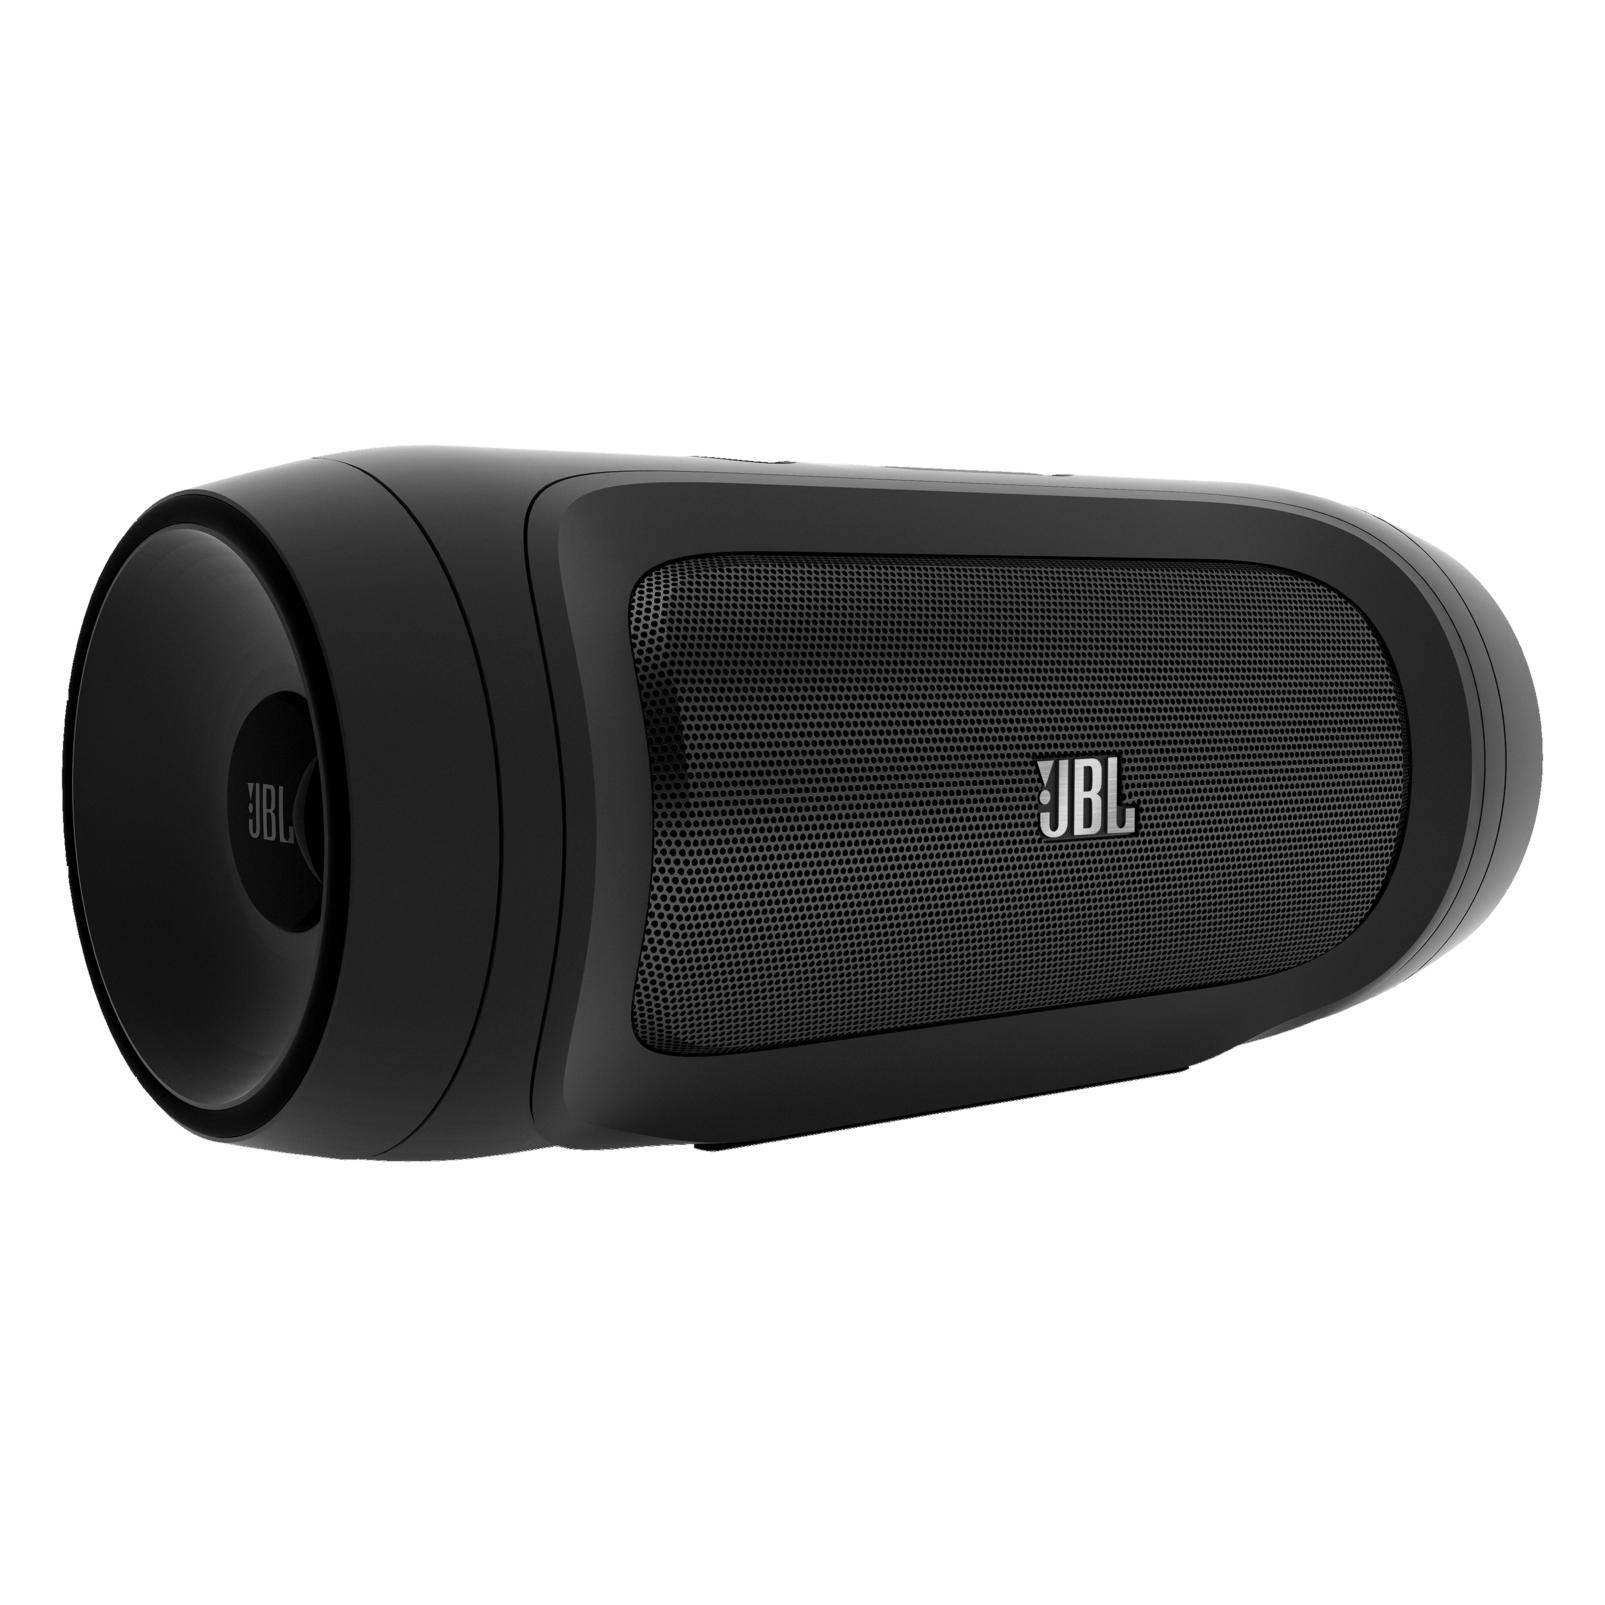 jbl charge portable wireless bluetooth speaker with usb charger. Black Bedroom Furniture Sets. Home Design Ideas